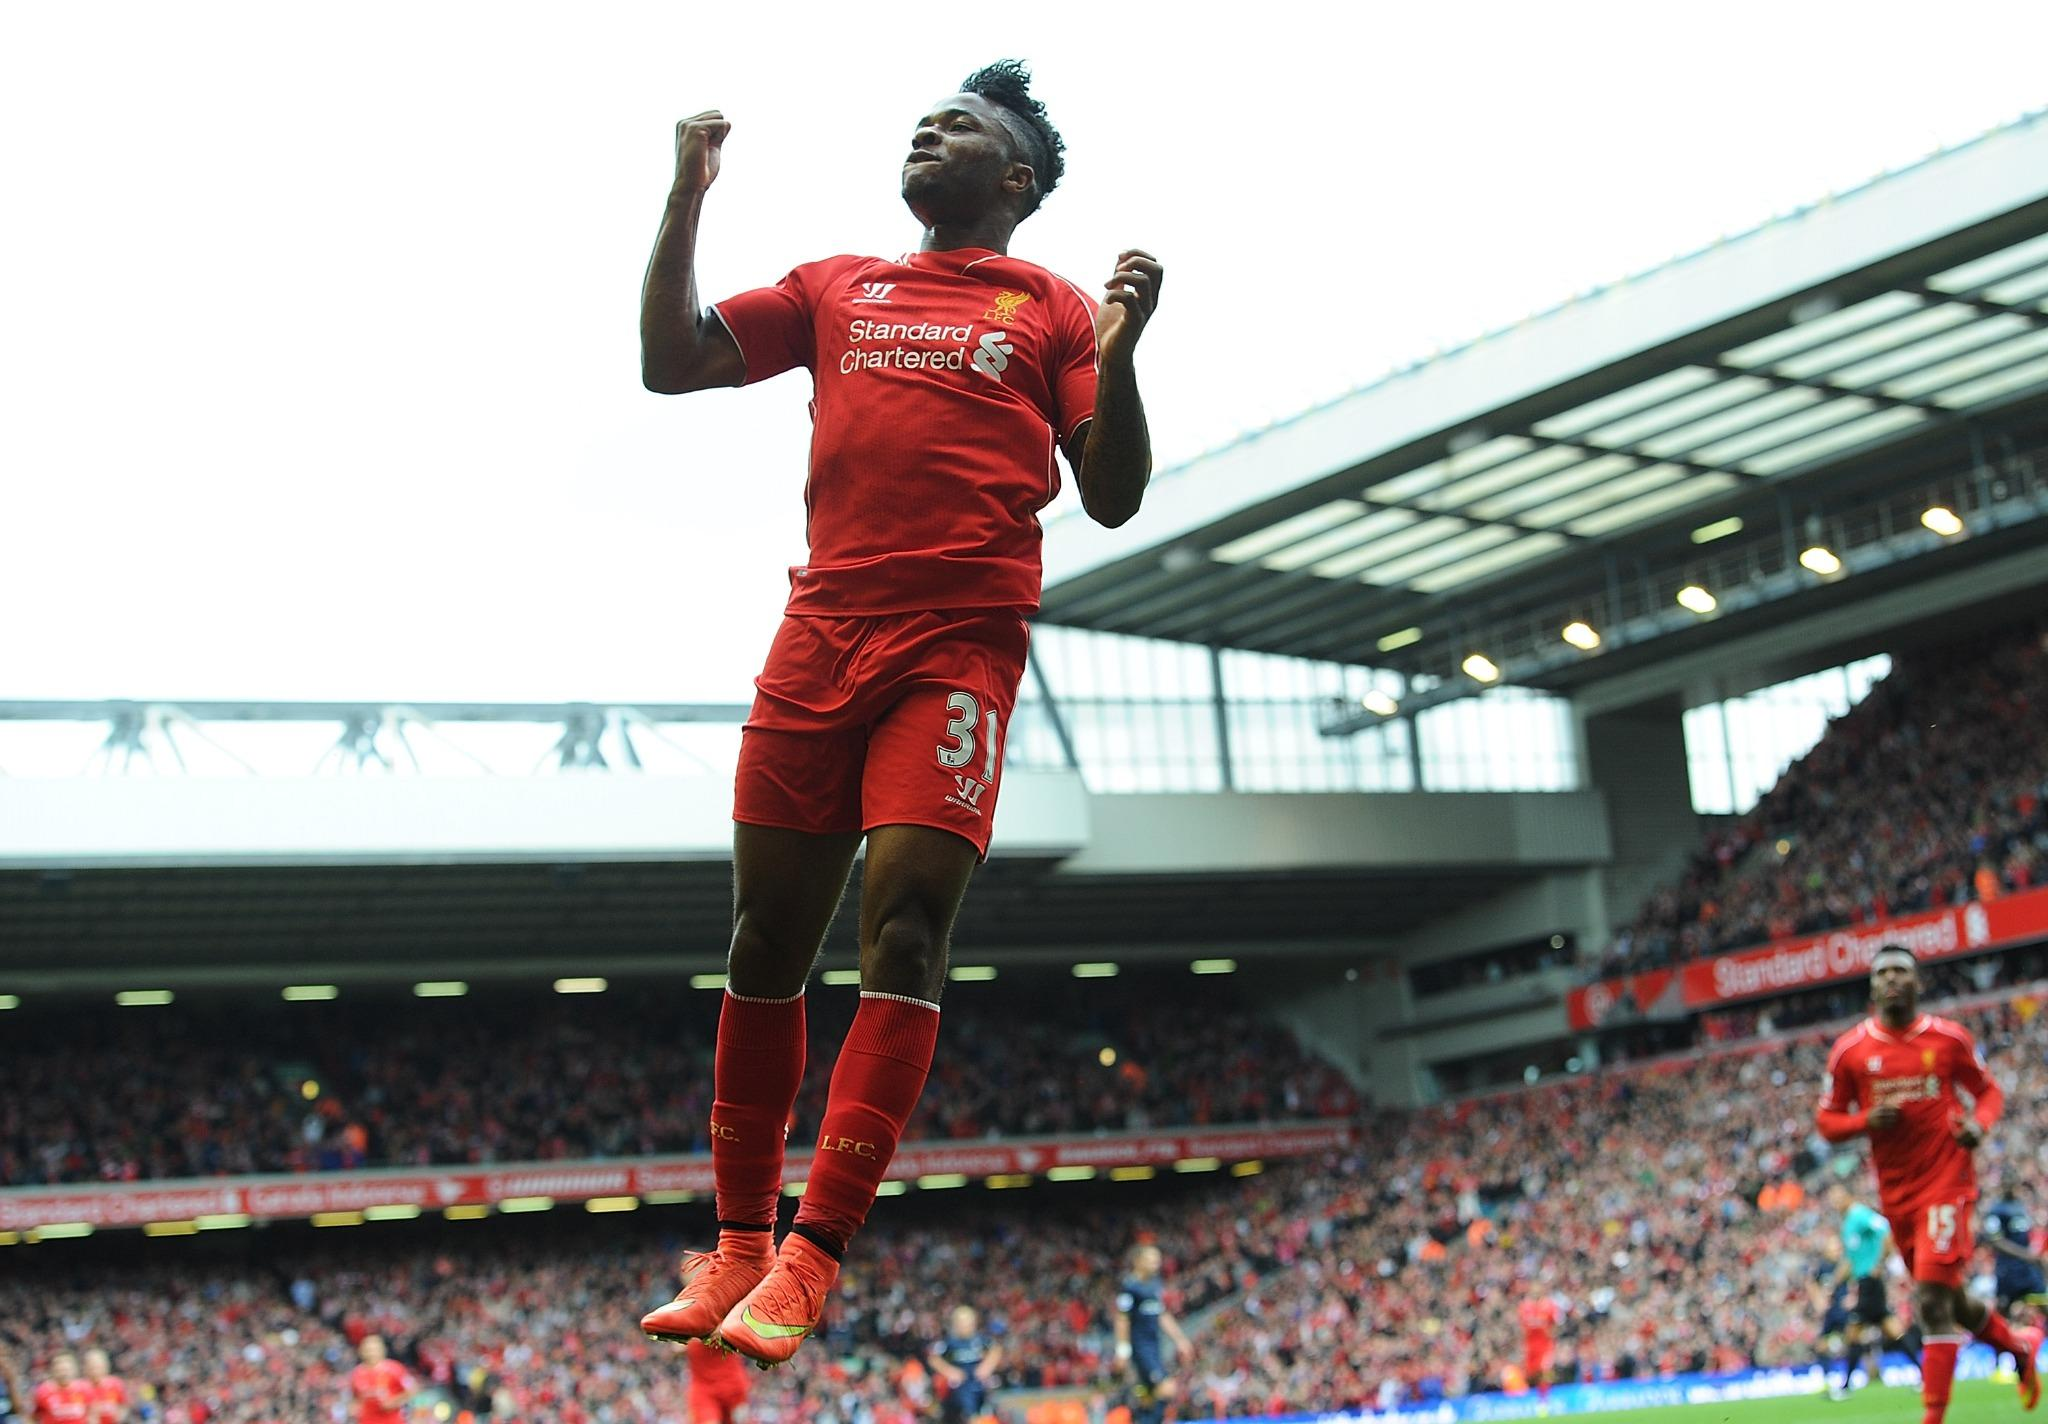 PHOTO: @sterling31 gets off the mark for the new season... #LFC http://t.co/mktcLmNx07